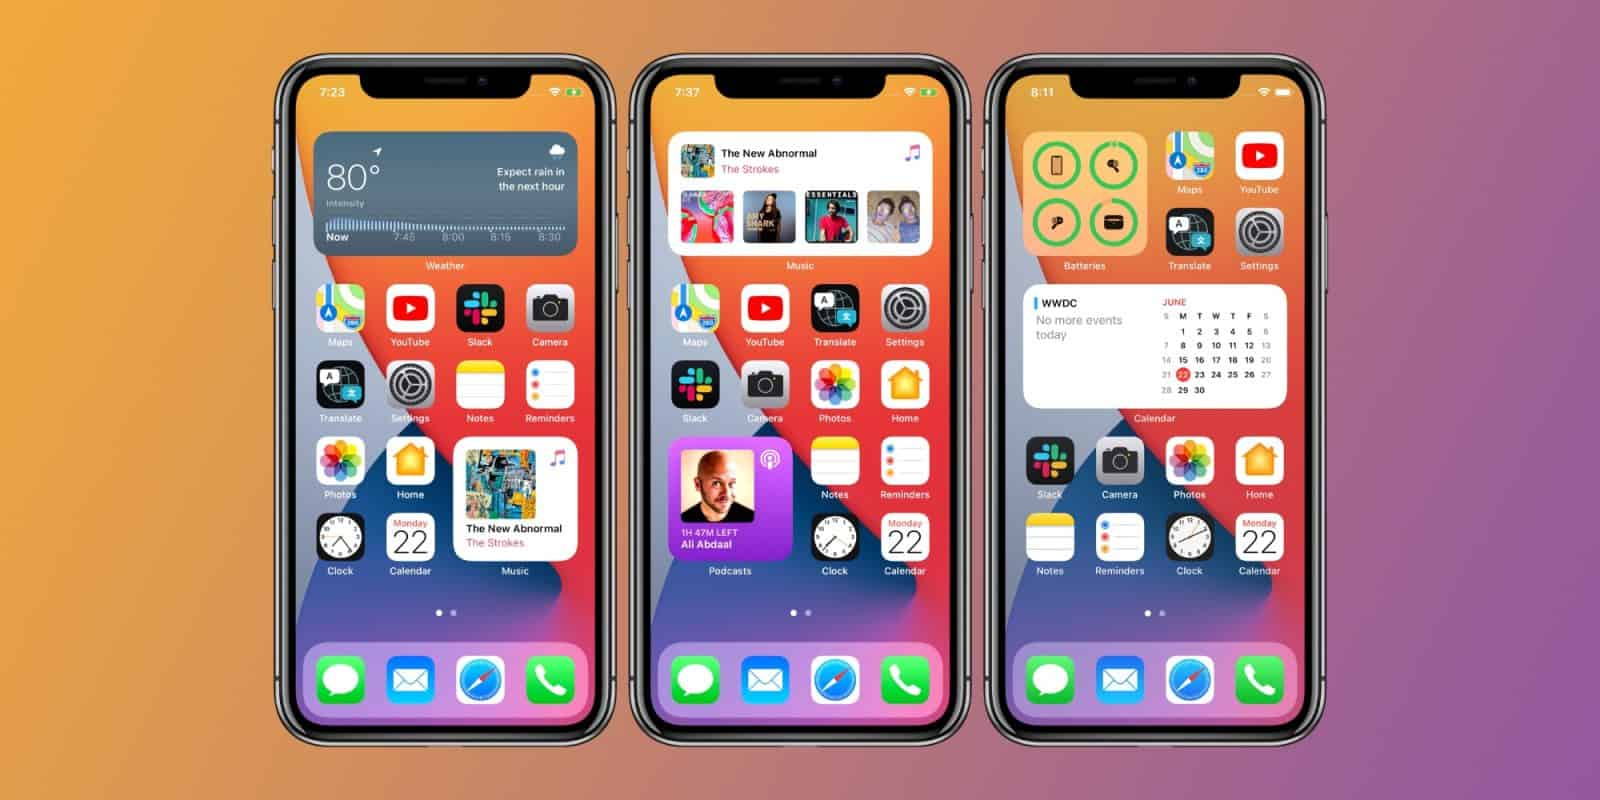 What to expect from iOS 14